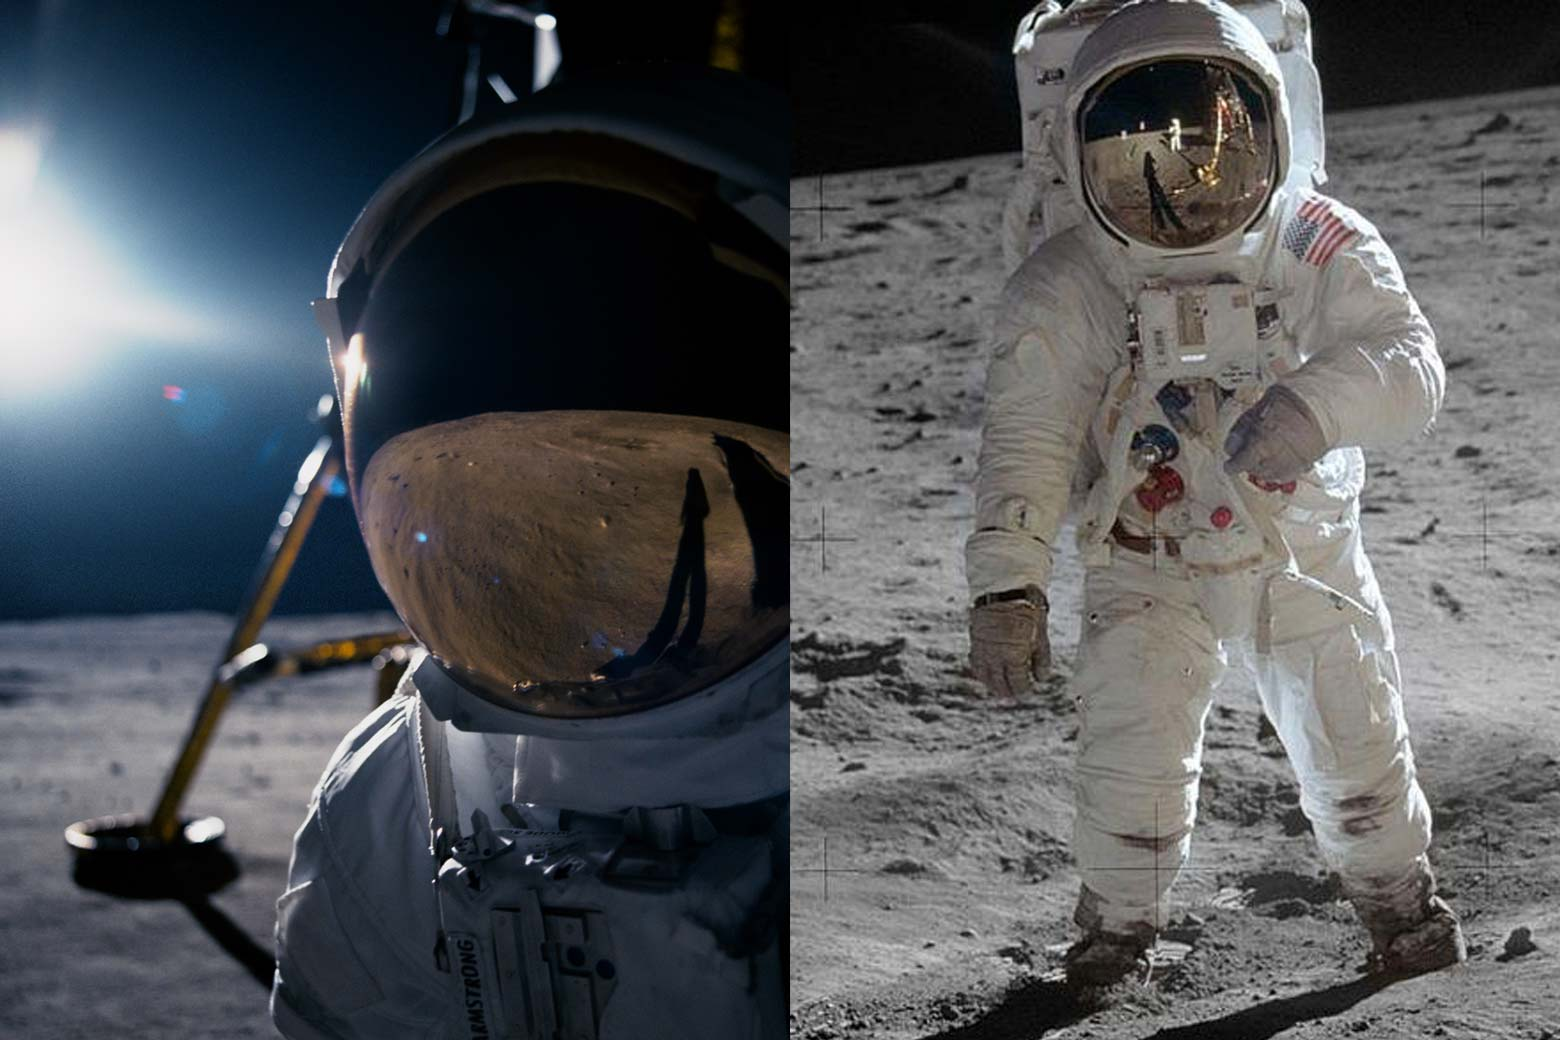 Side-by-side images of Hollywood's version of the moon landing, and also images from the moon landing.